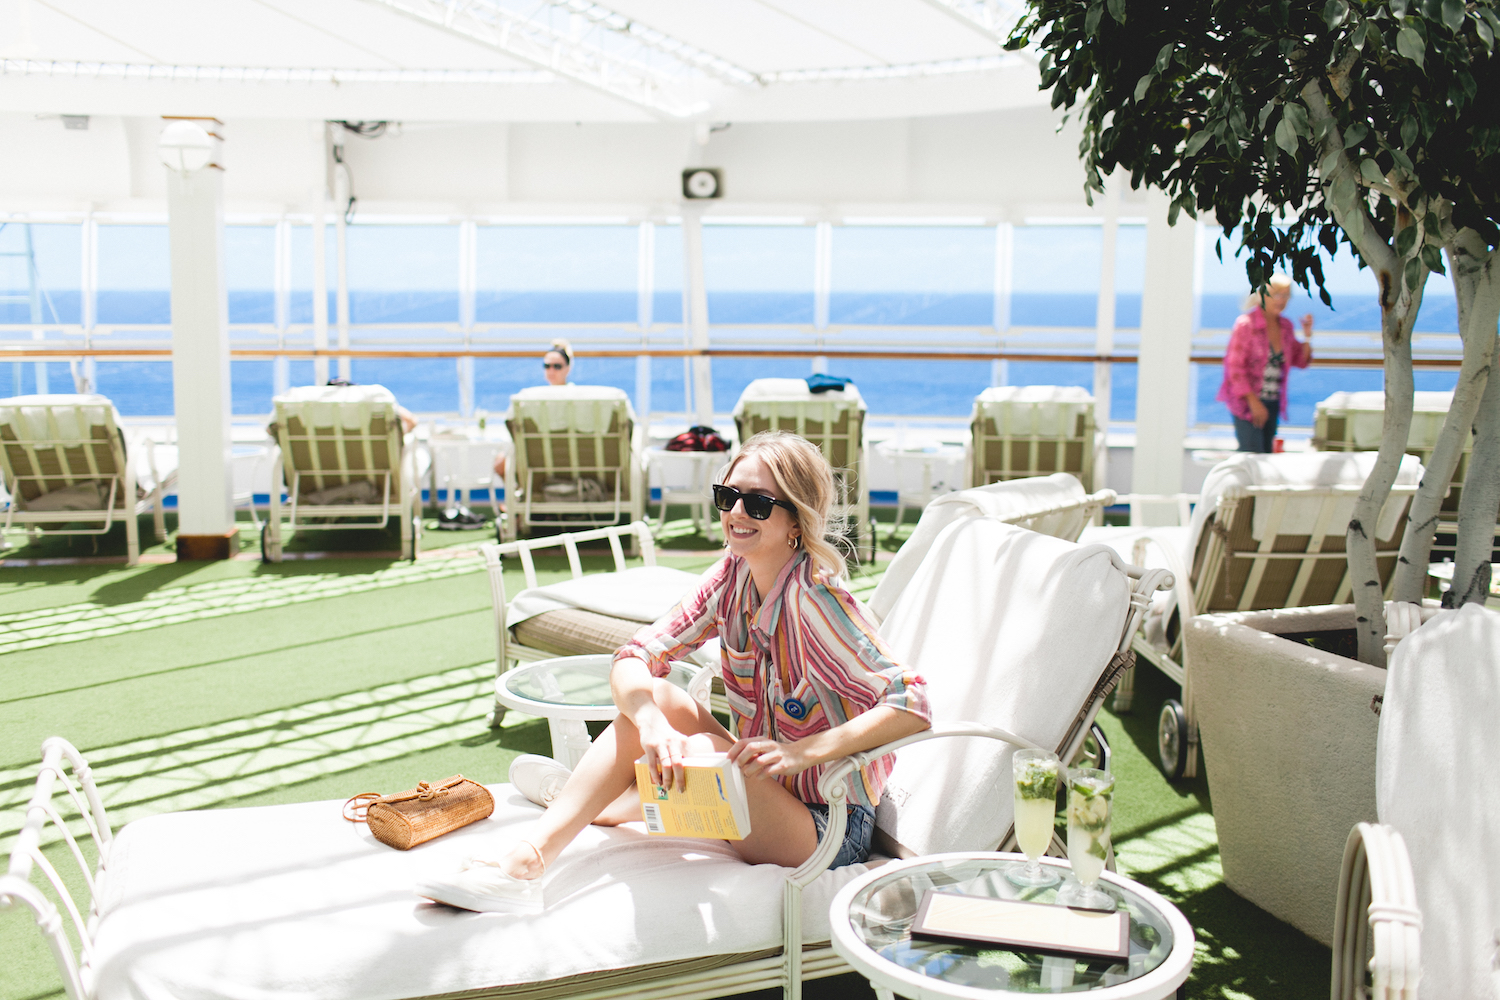 travel, come back new, lido deck, oceannow, terrace pool, fitness center, the love boat, OceanMedallion, Princess Cruises, MedallionClass, Caribbean cruise, 7 Day Western Caribbean Cruise, sanctuary, mojito,